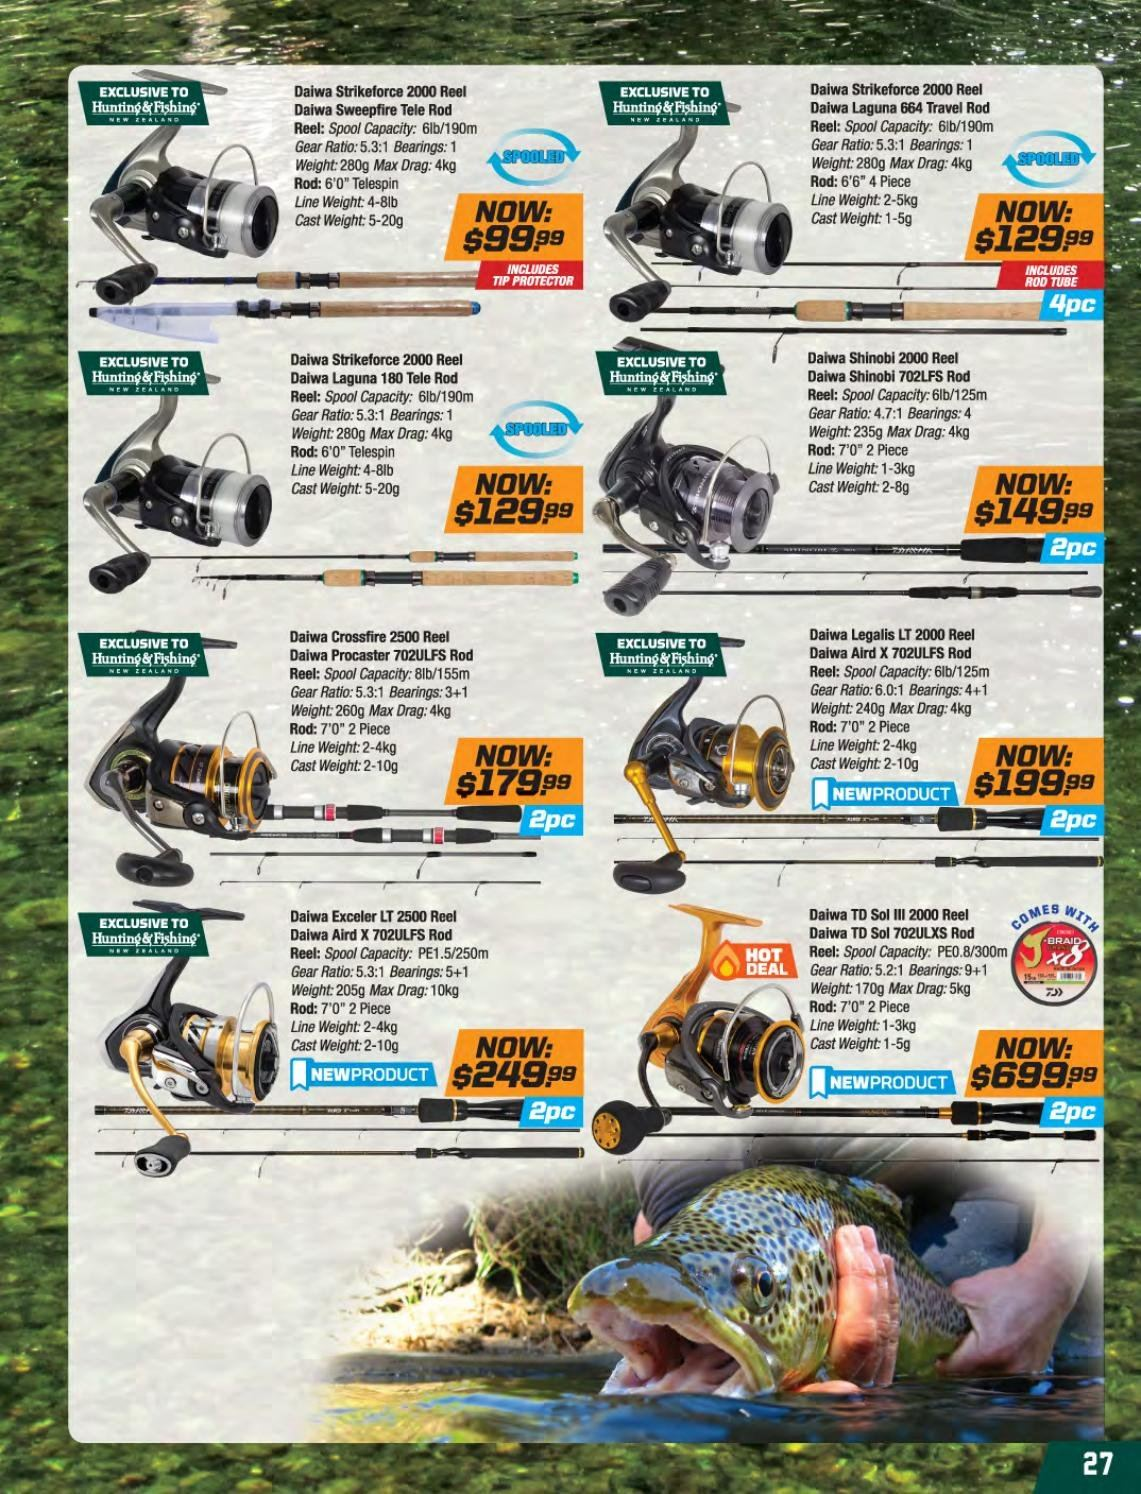 Hunting & Fishing mailer - Sales products - reel. Page 27.